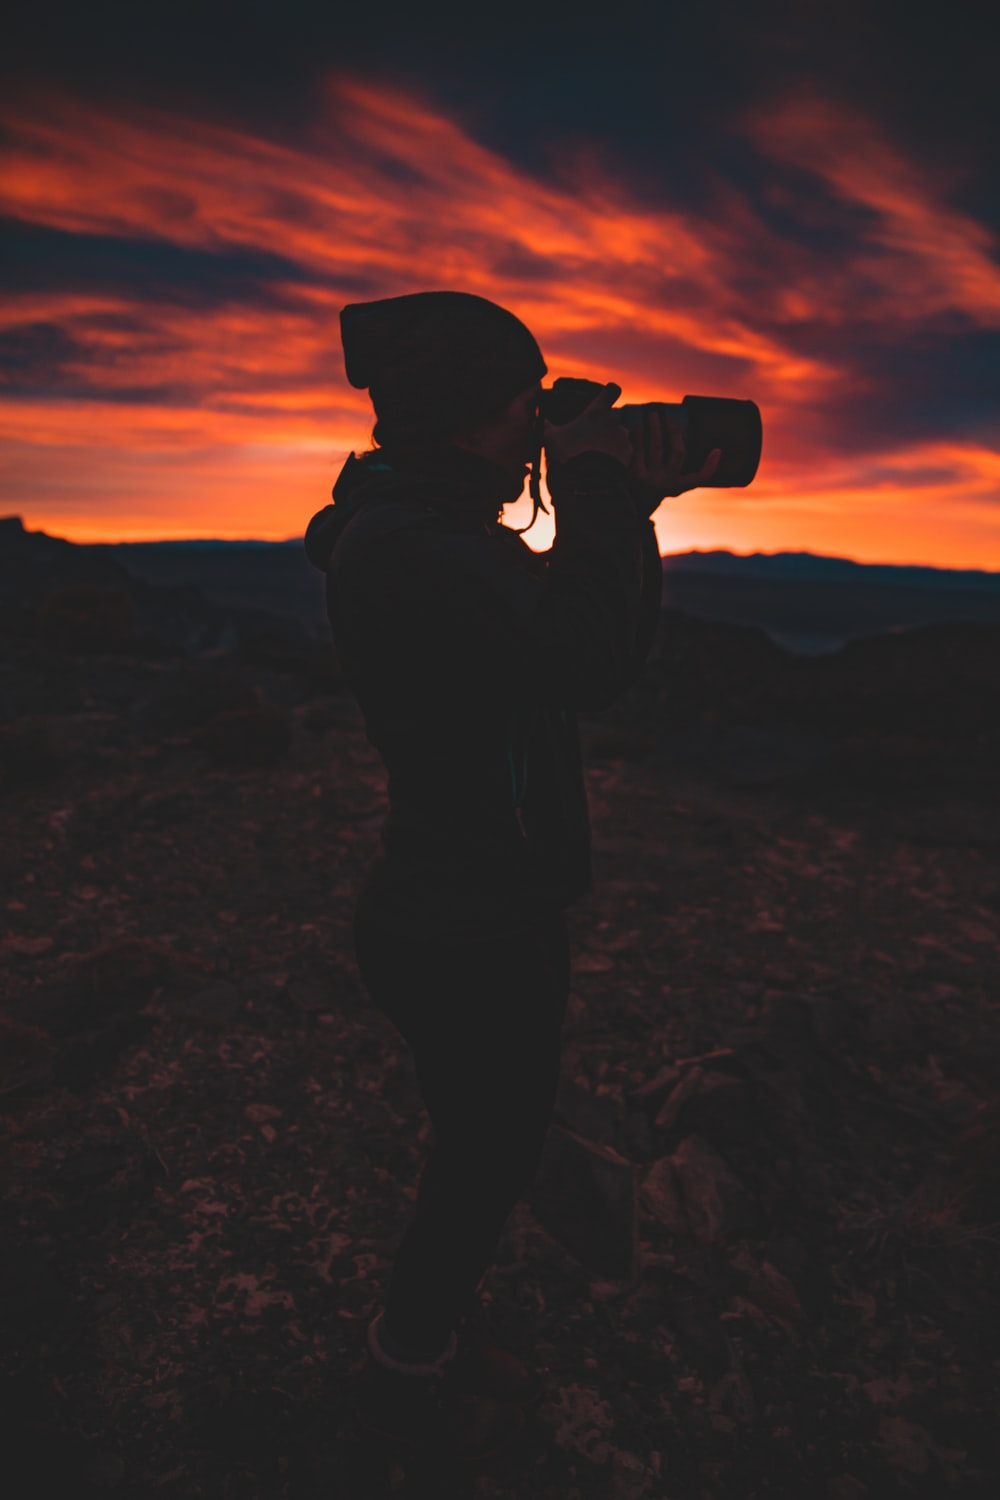 silhouette of person holding camera during golden hour